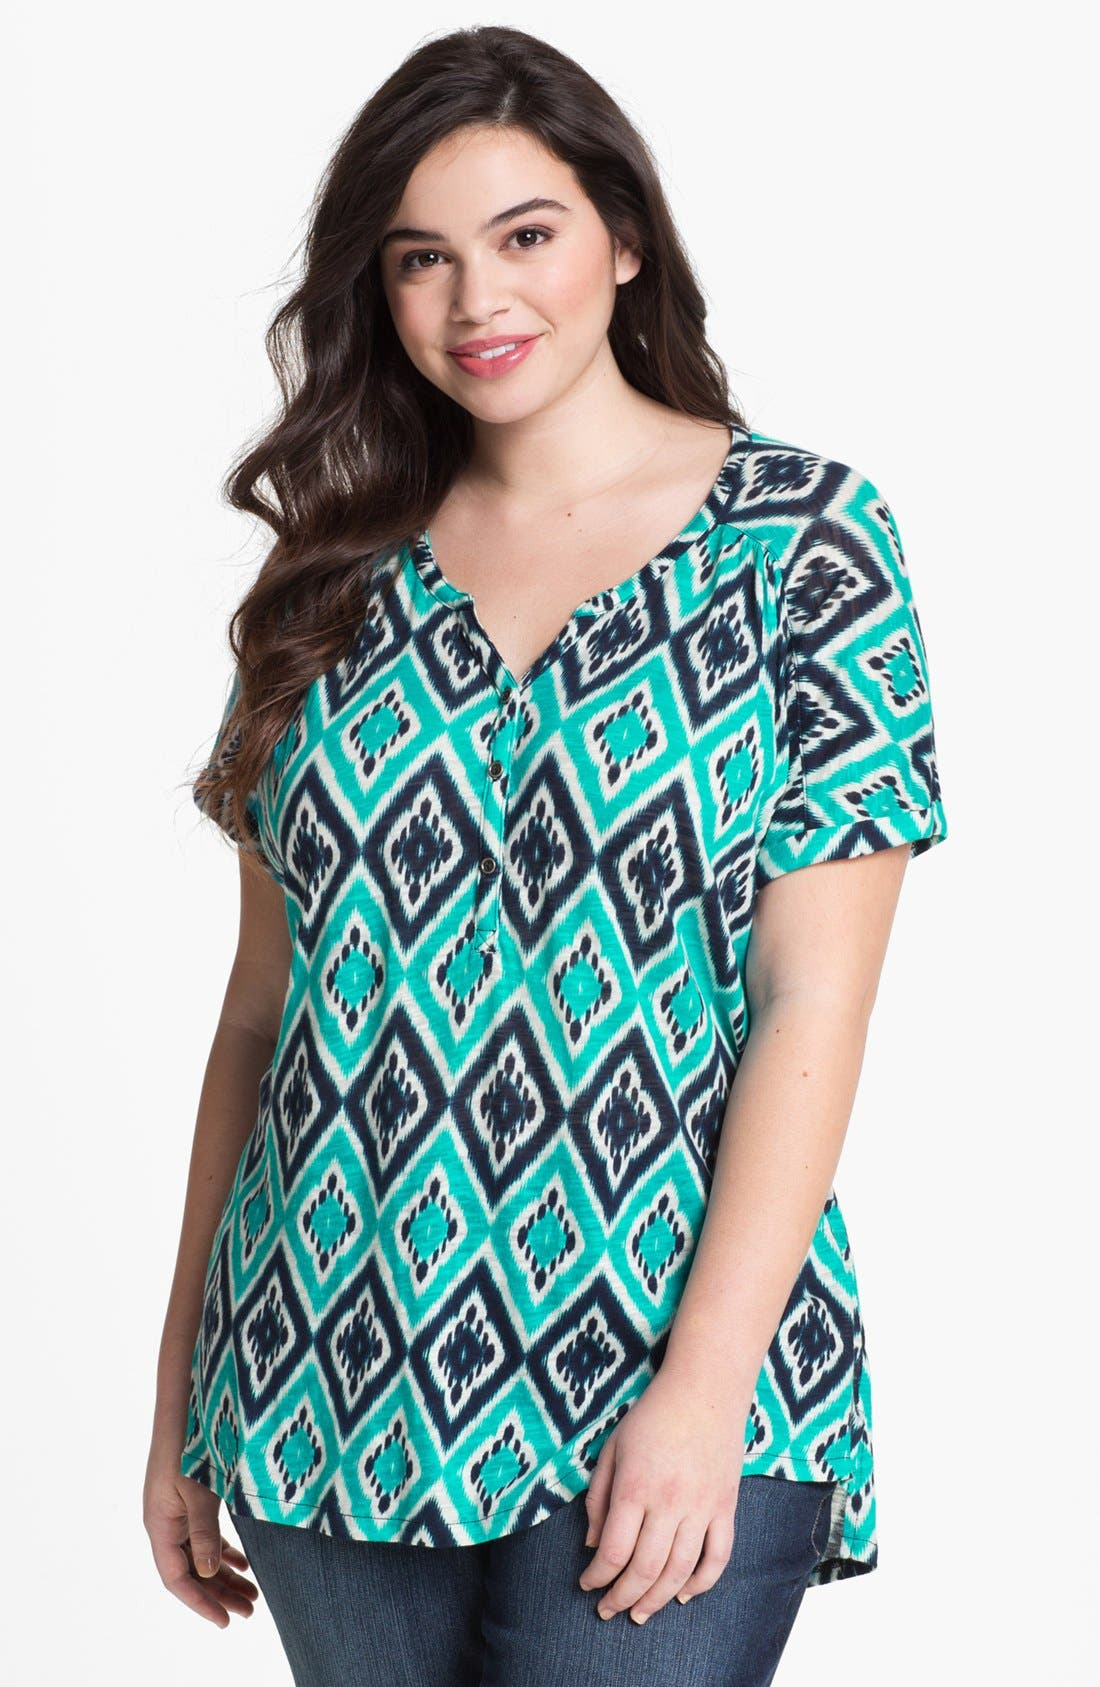 Alternate Image 1 Selected - Lucky Brand Ikat Print Top (Plus Size)